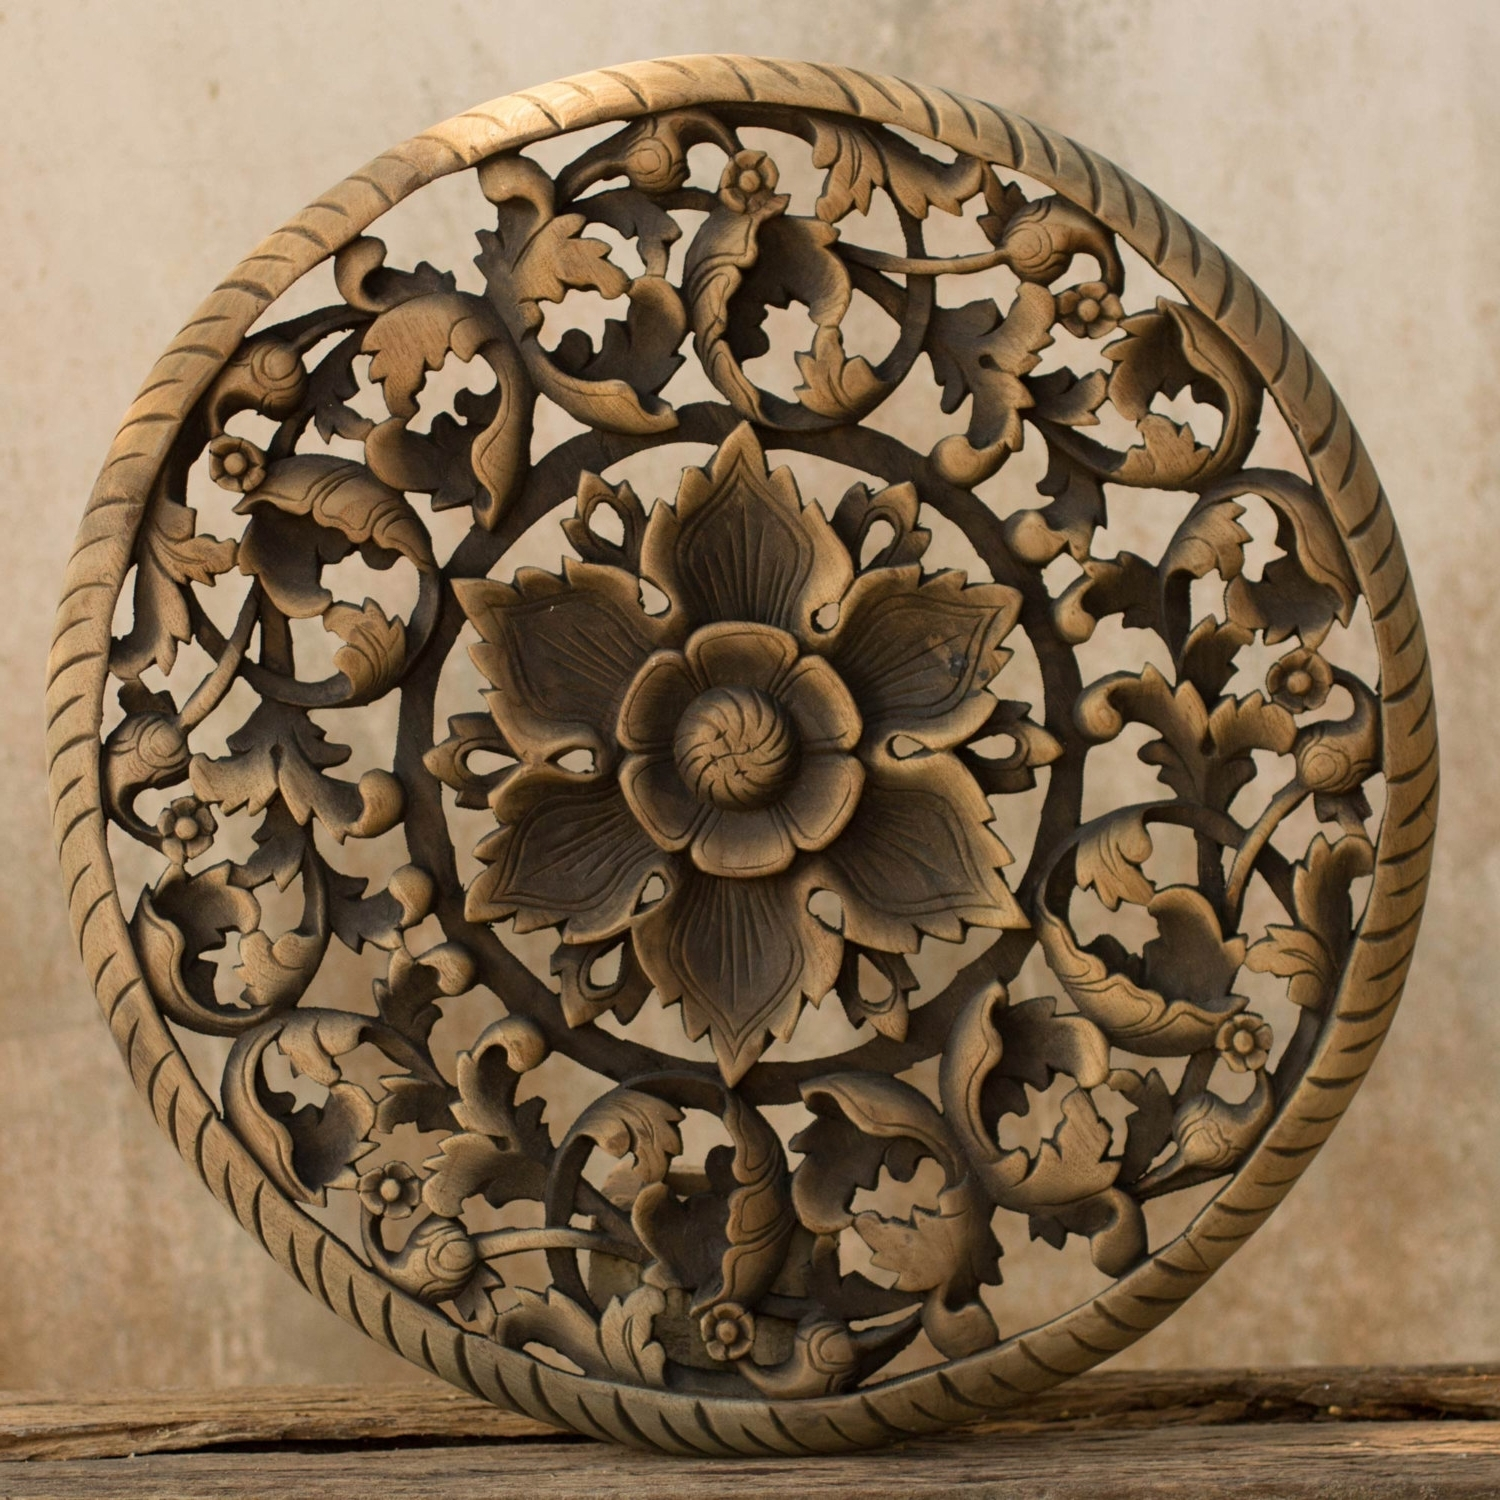 Carved Wood Wall Art Throughout Trendy Buy Tree Dimensional Floral Wooden Wall Hanging Online (View 5 of 15)